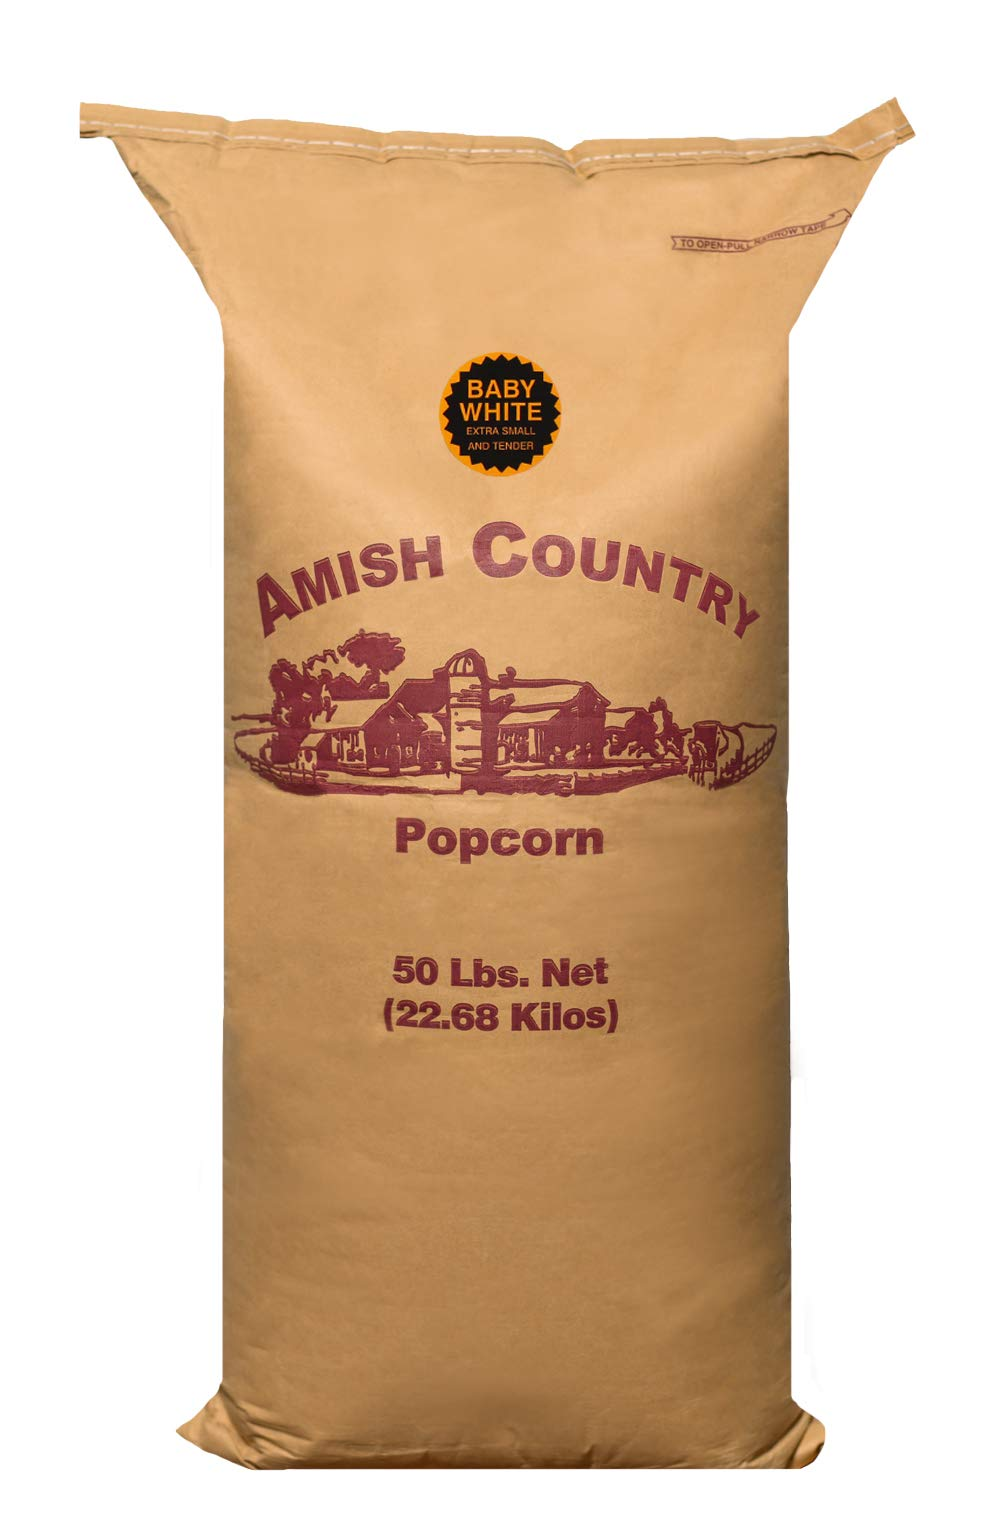 Amish Country Popcorn - 50 Pound Baby White - Small & Tender Popcorn - Perfect for Fundraisers - Non GMO, Gluten Free, Microwaveable, Stovetop and Air Popper Friendly With Recipe Guide by Amish Country Popcorn